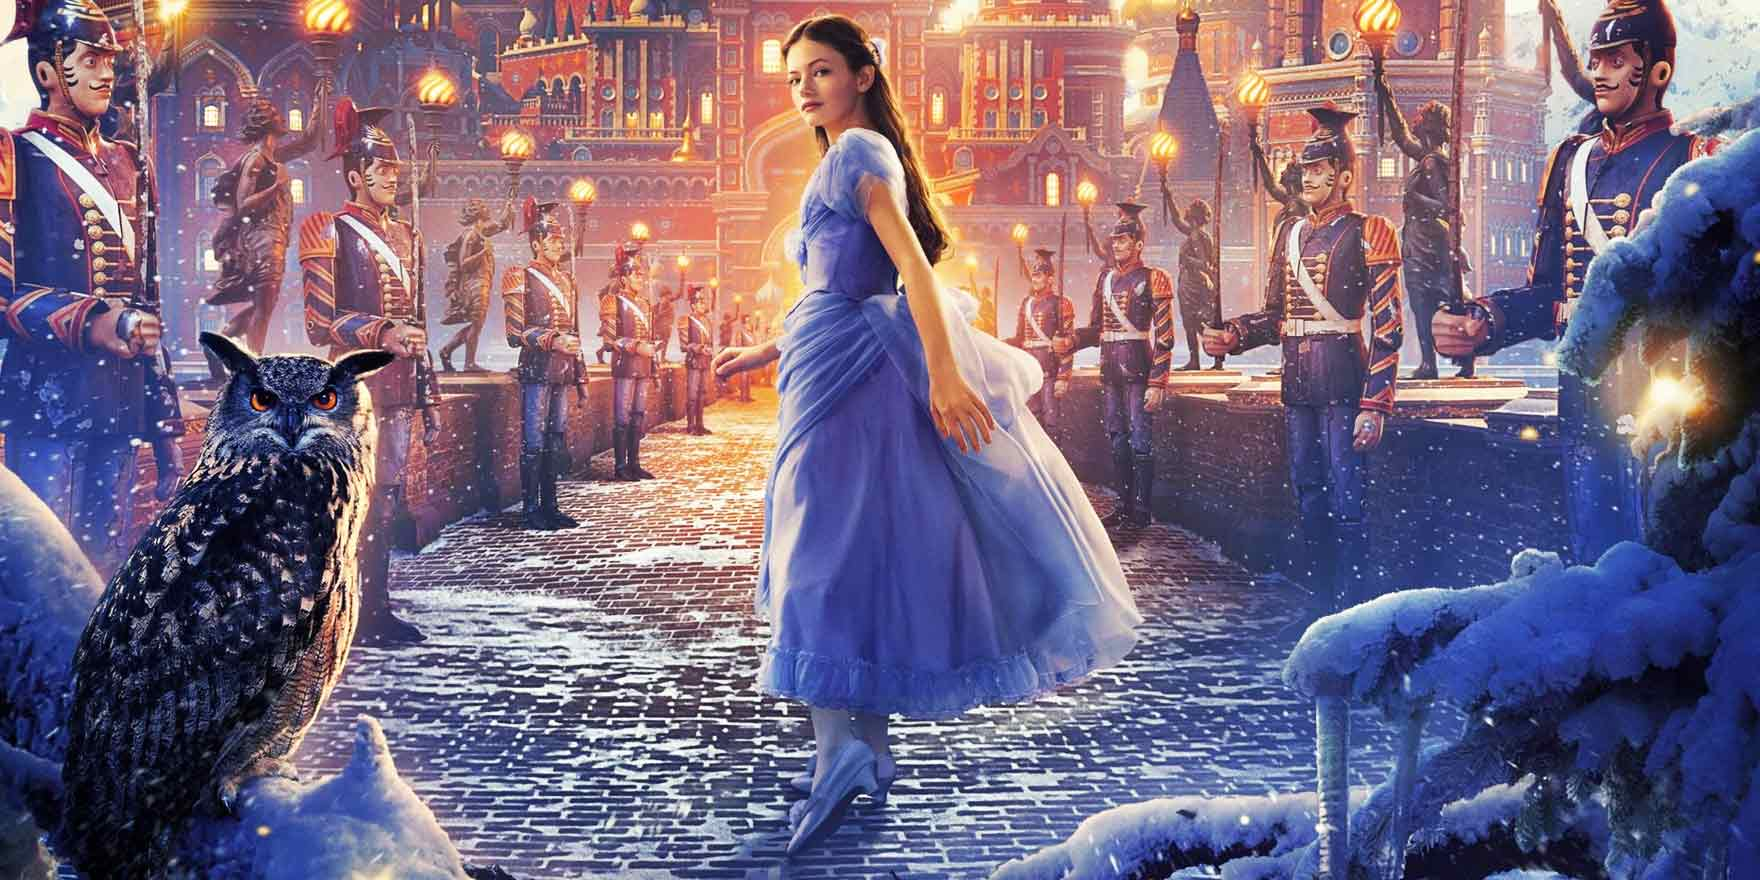 The Nutcracker and the Four Realms - Header Image